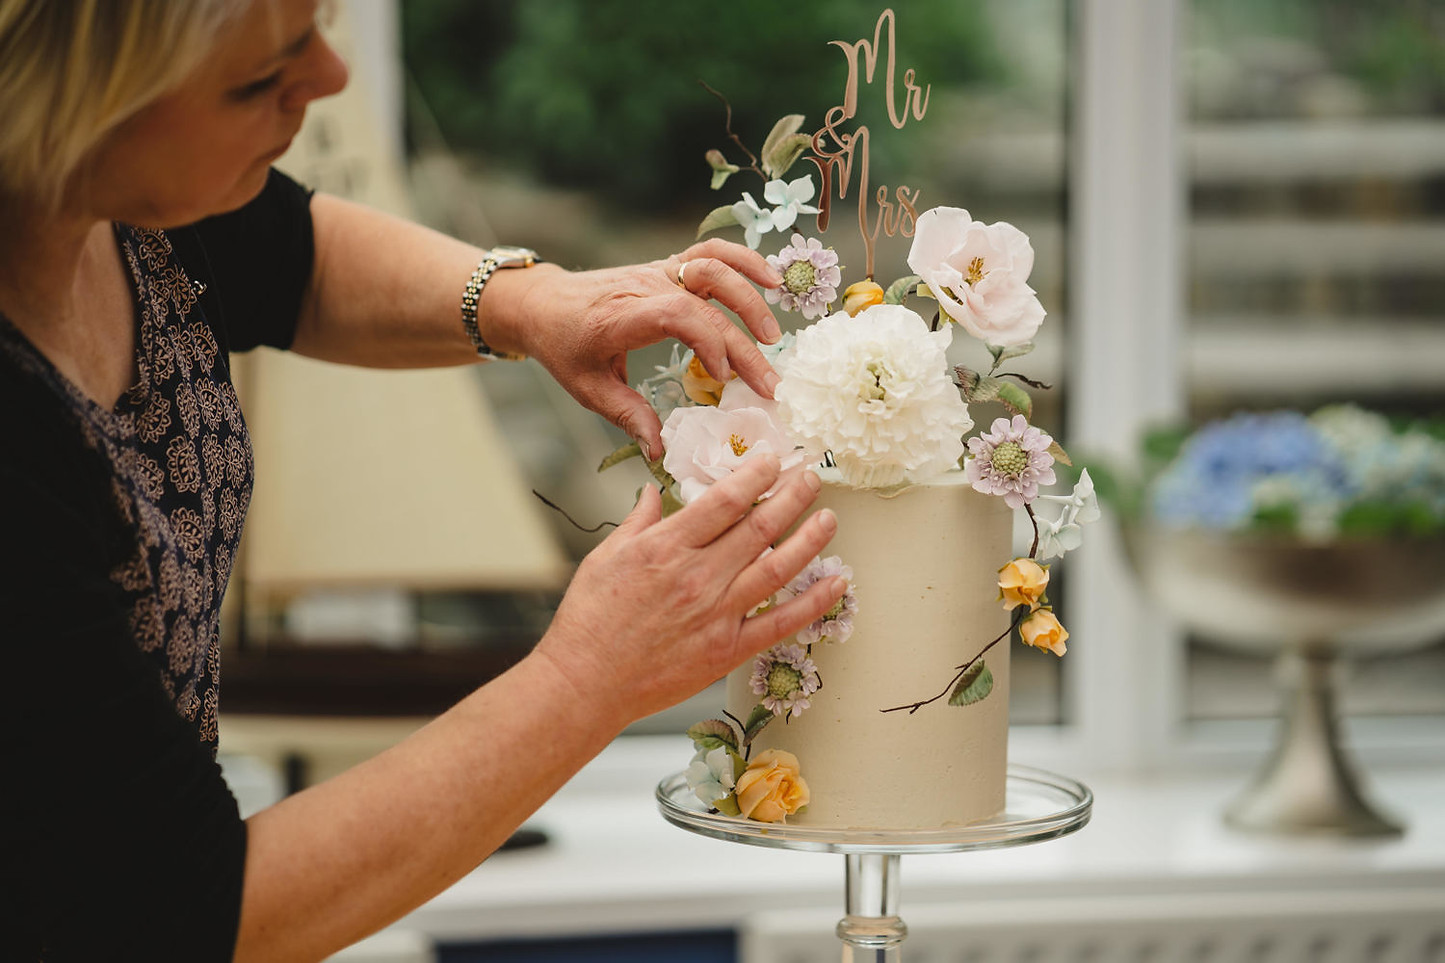 Dawn from Wedding Cakes by Design